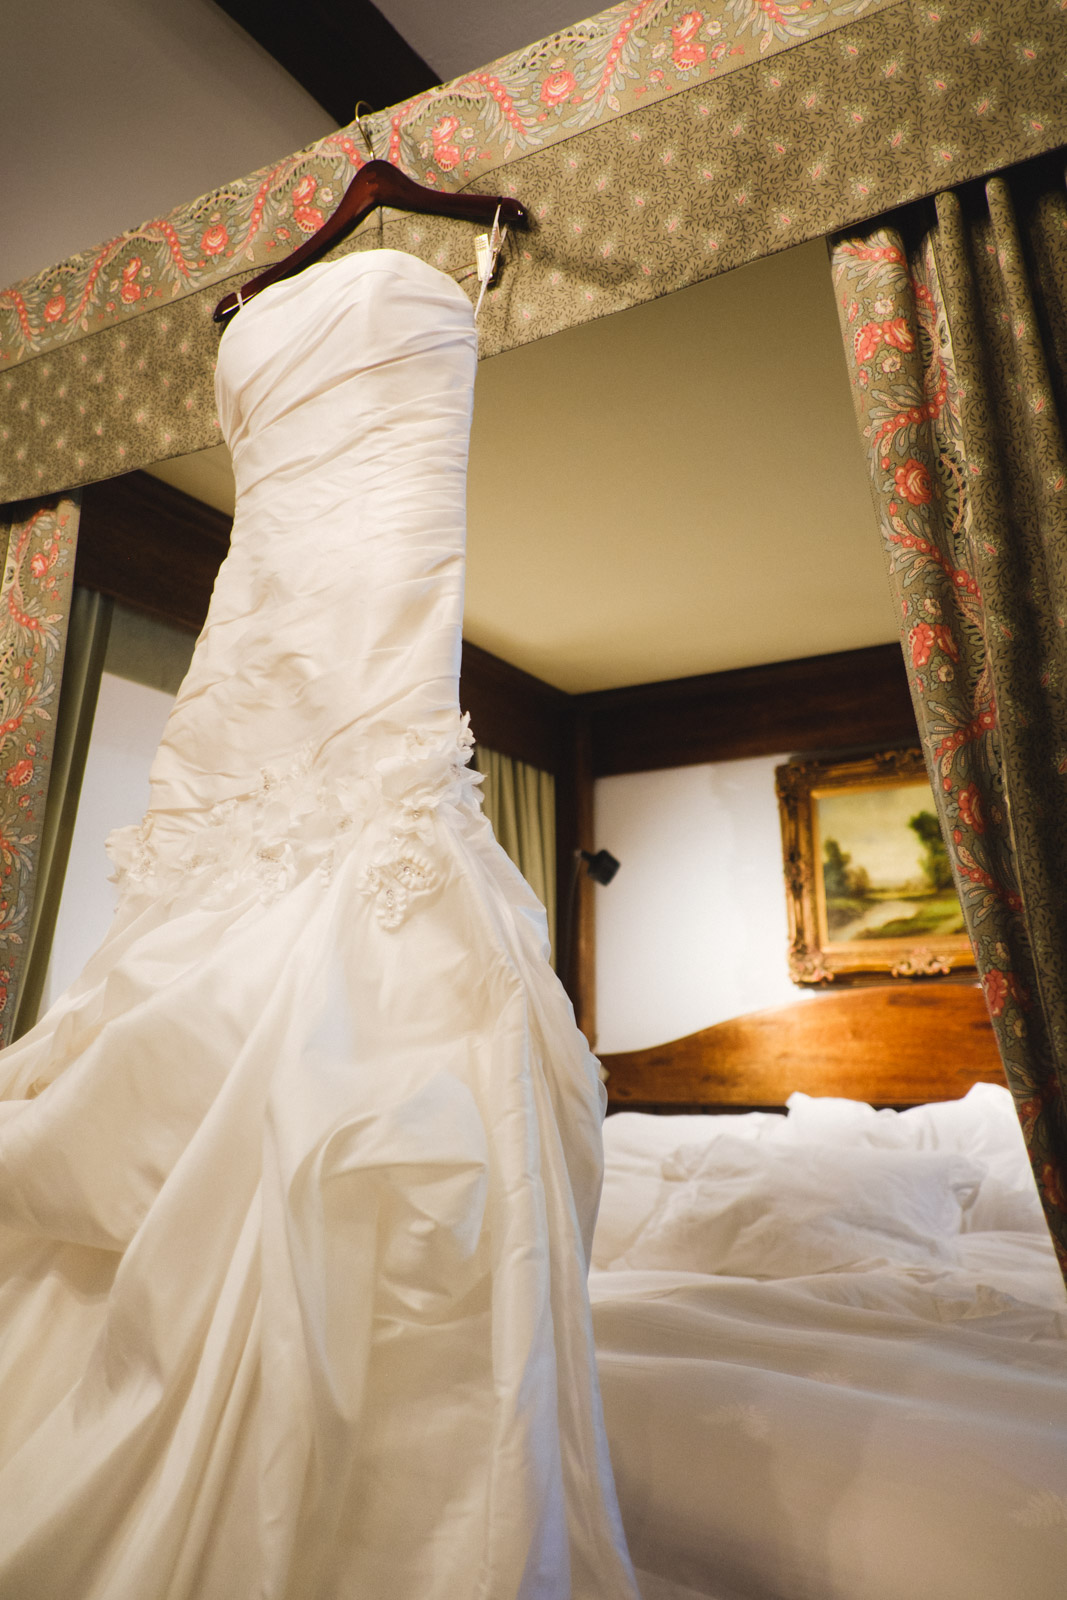 Wedding dress at Chateau du Sureau